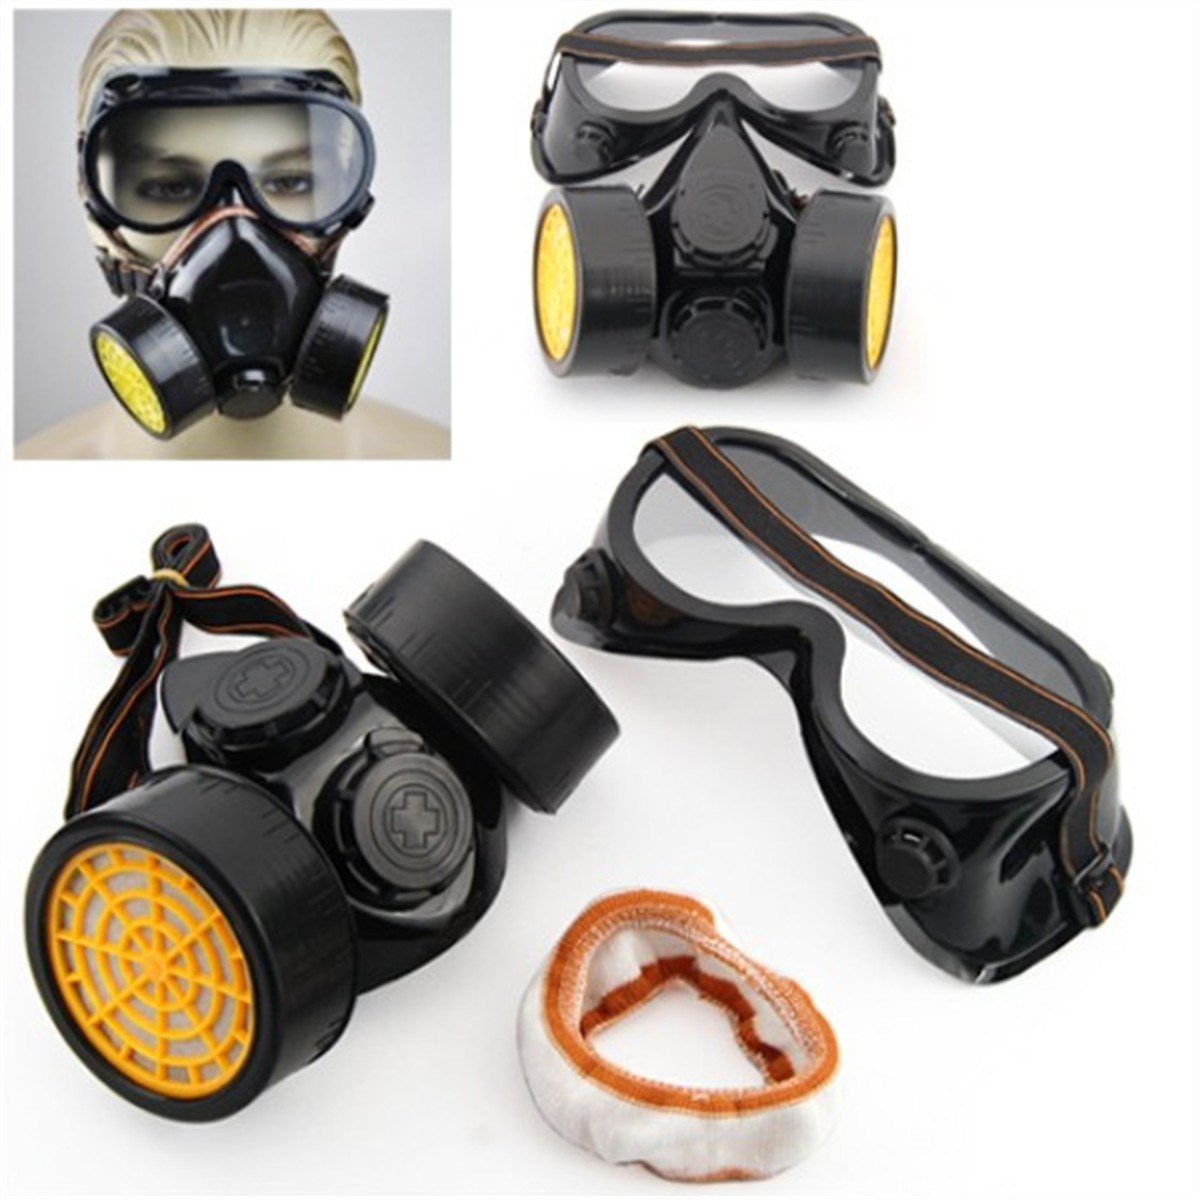 New Double Cartridges Filter Cotton Chemical Respirator Anti-Dust Mask + Eye Goggles(China (Mainland))